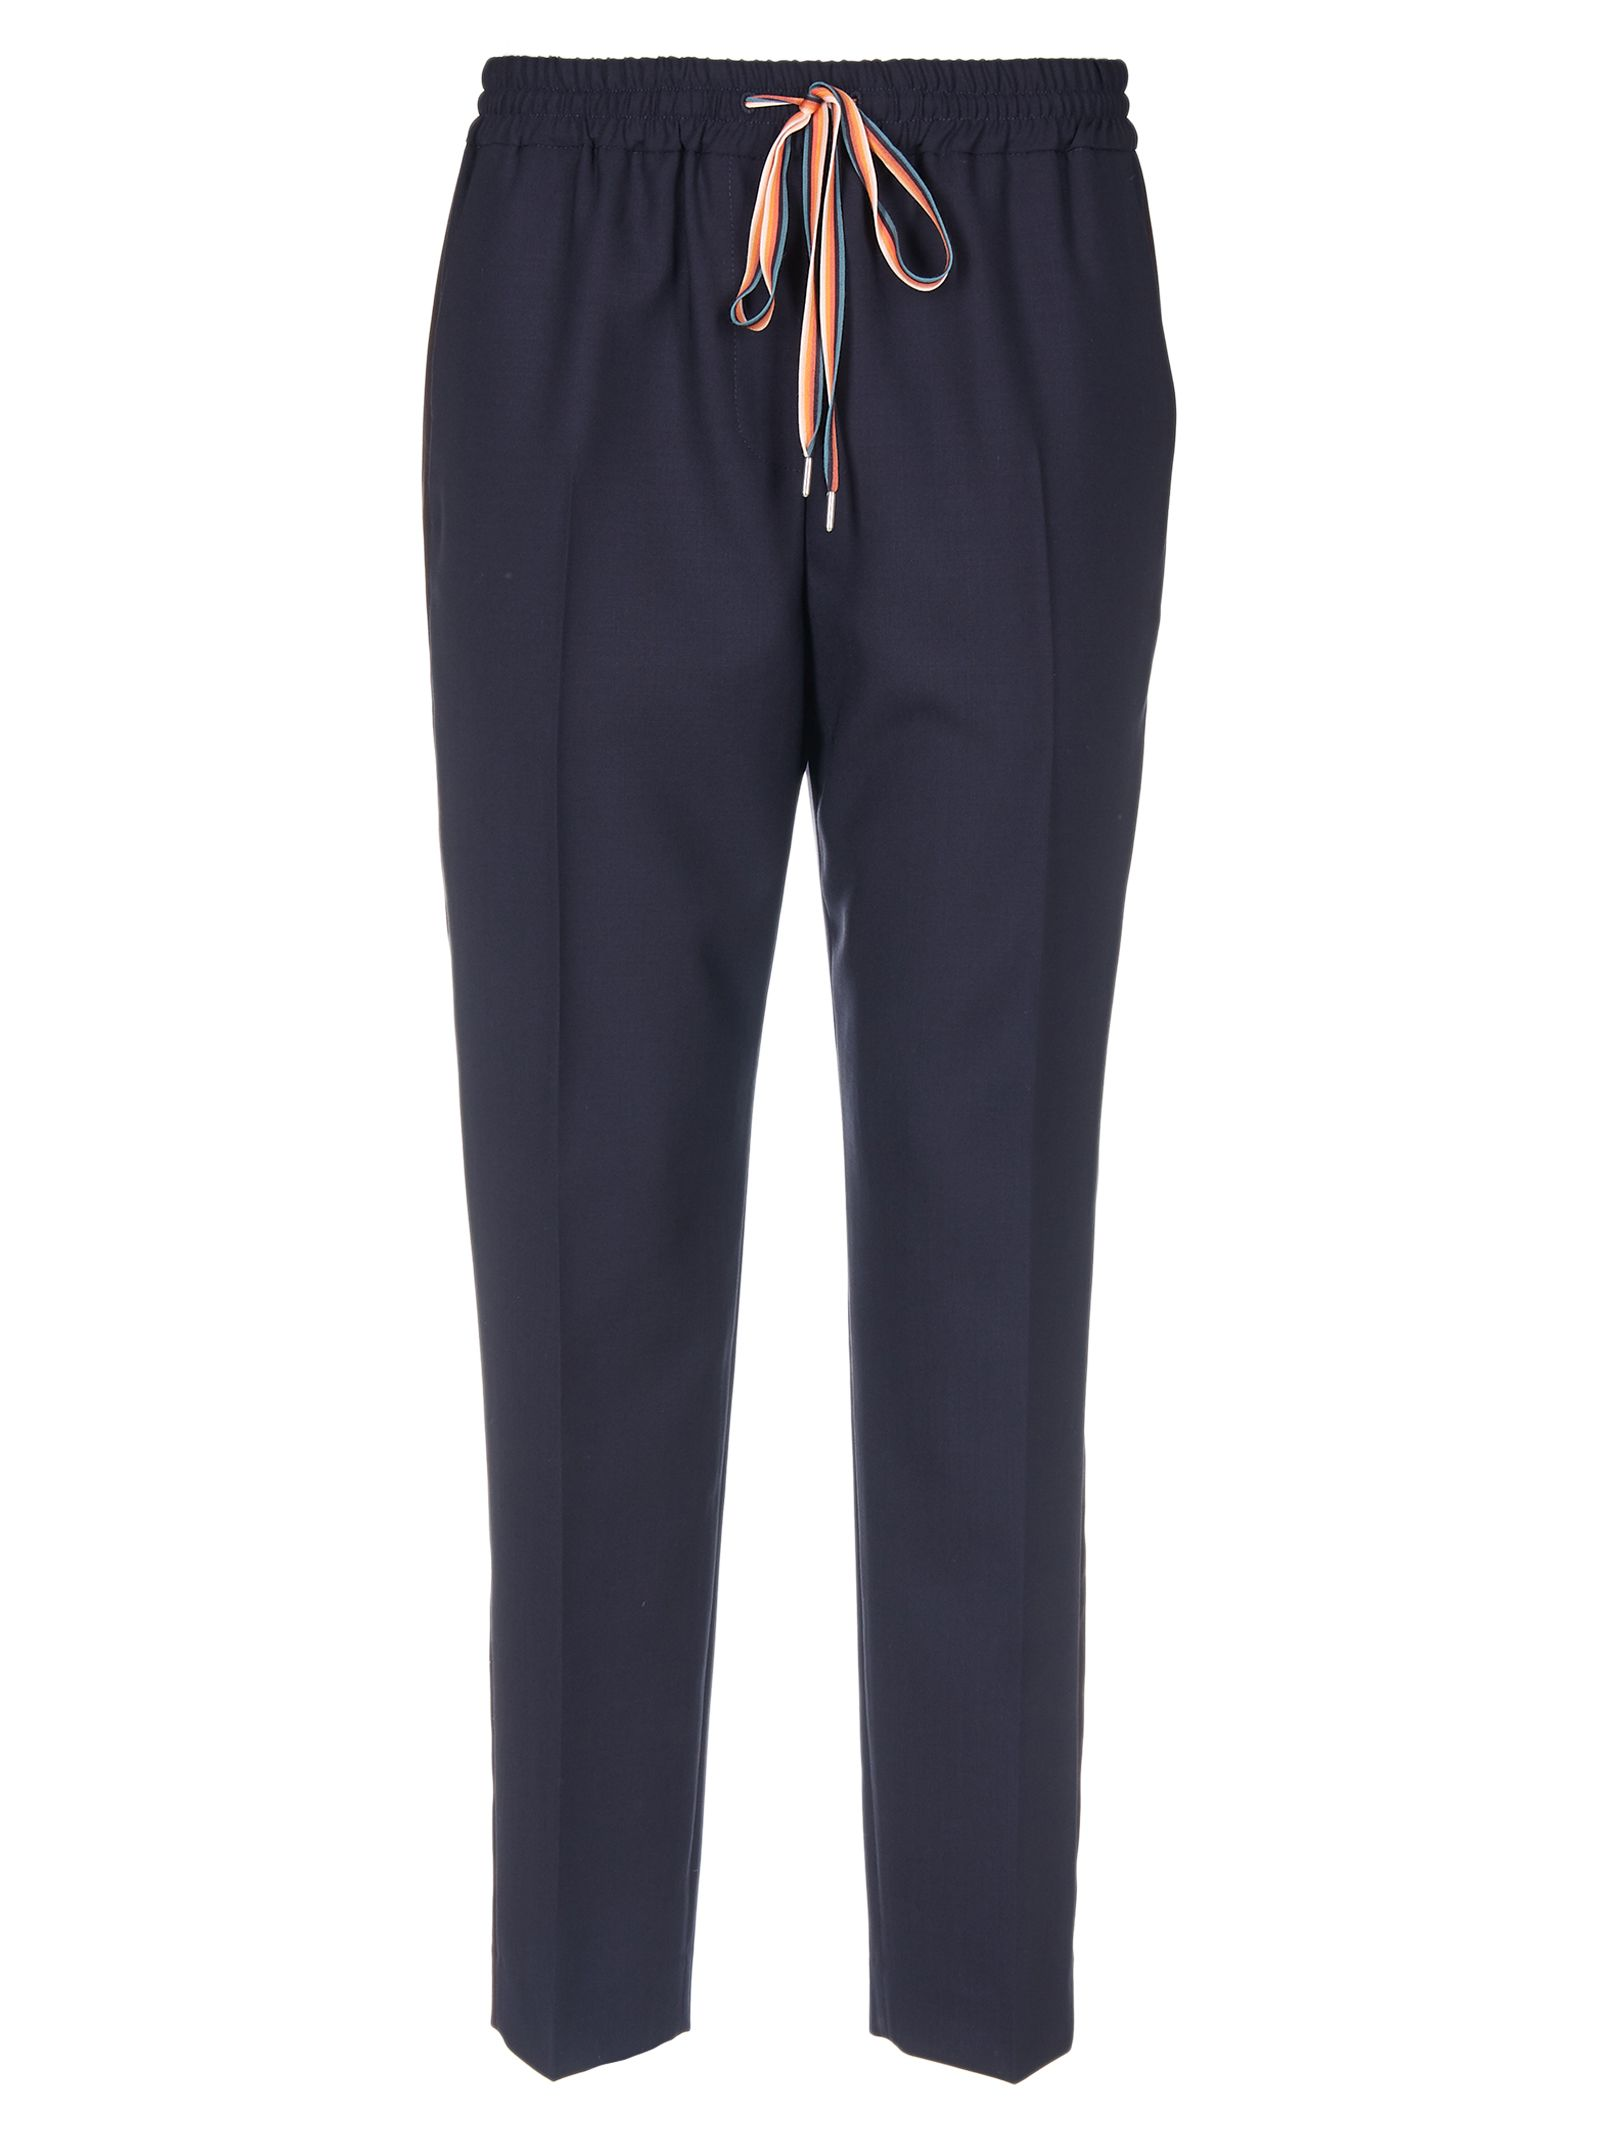 Paul Smith Drawstring Waist Trousers